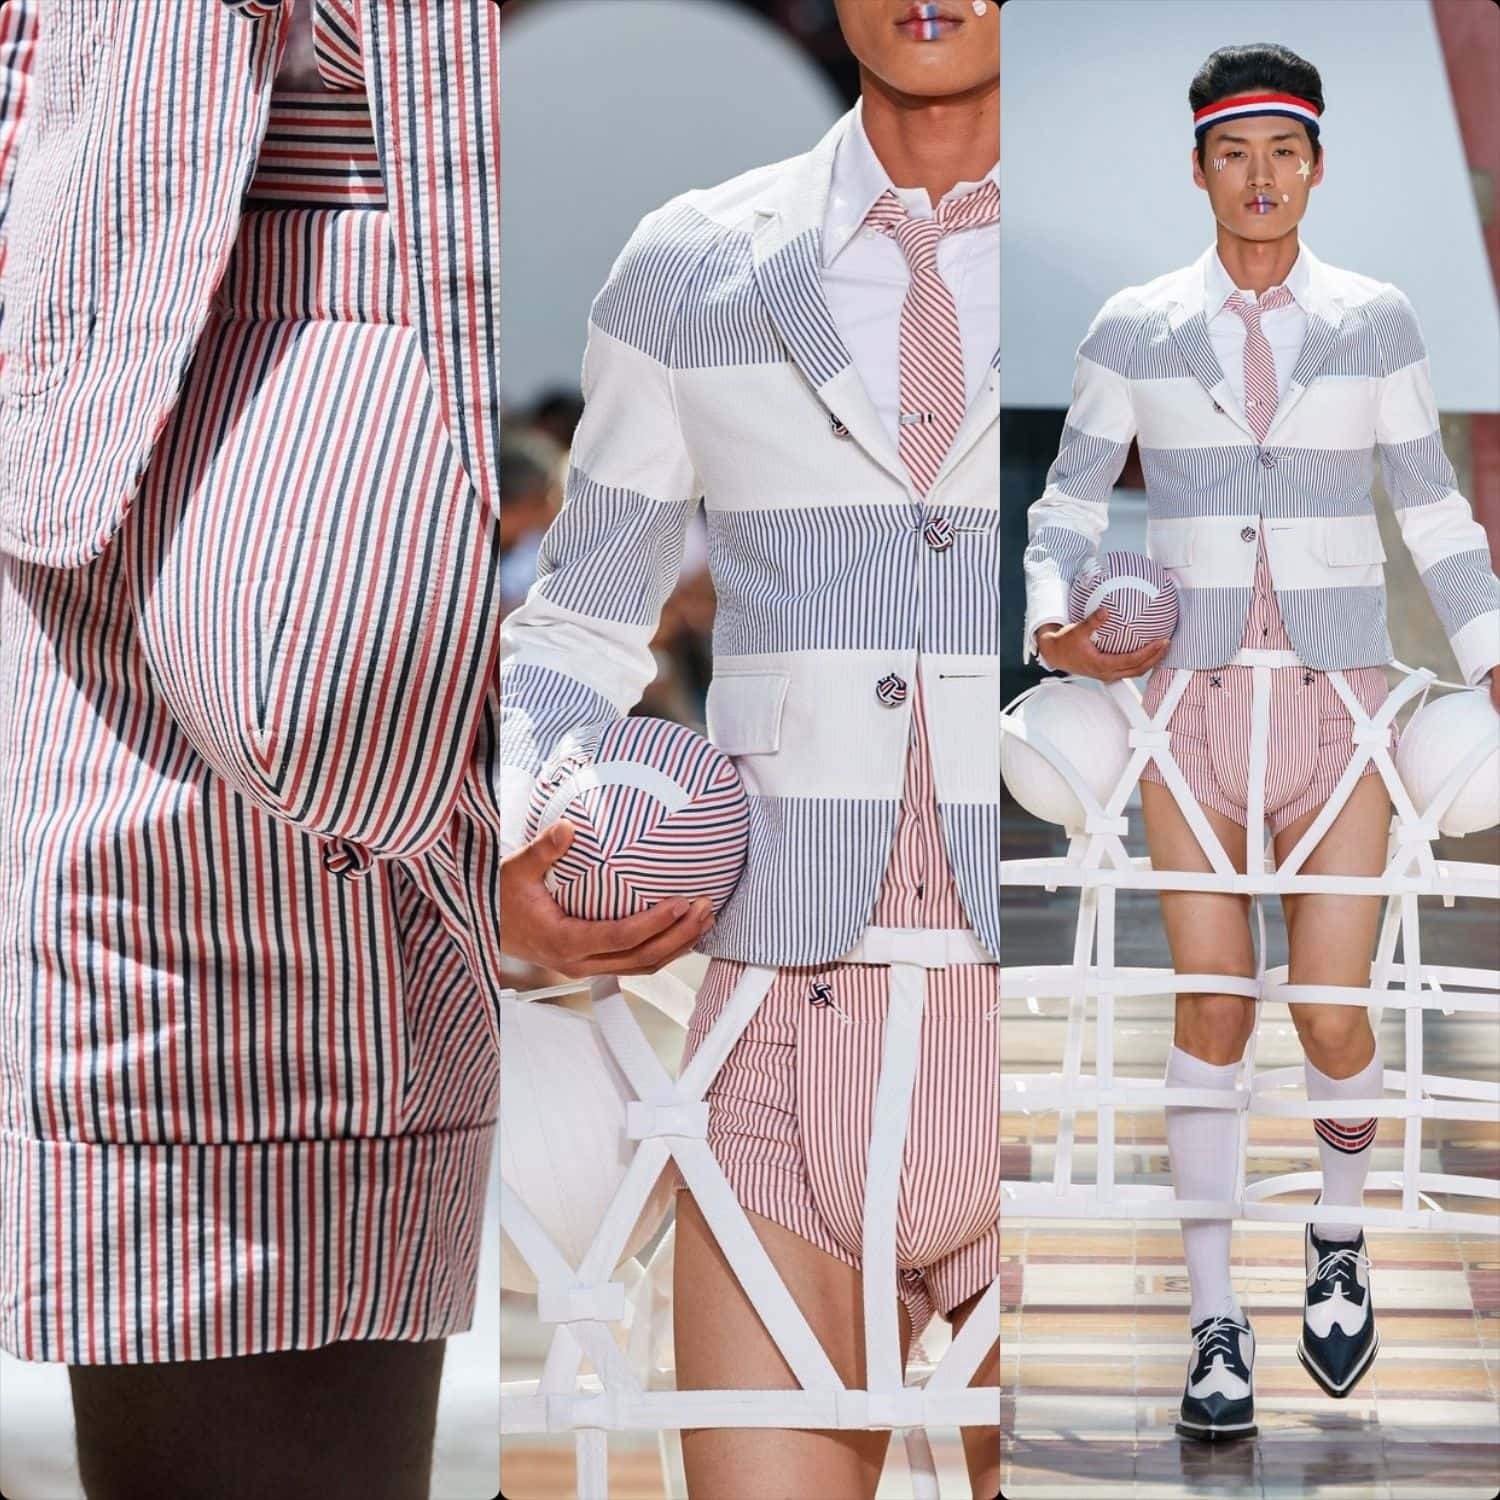 Thom Browne Menswear Spring Summer 2020 Paris. RUNWAY MAGAZINE ® Collections. RUNWAY NOW / RUNWAY NEW